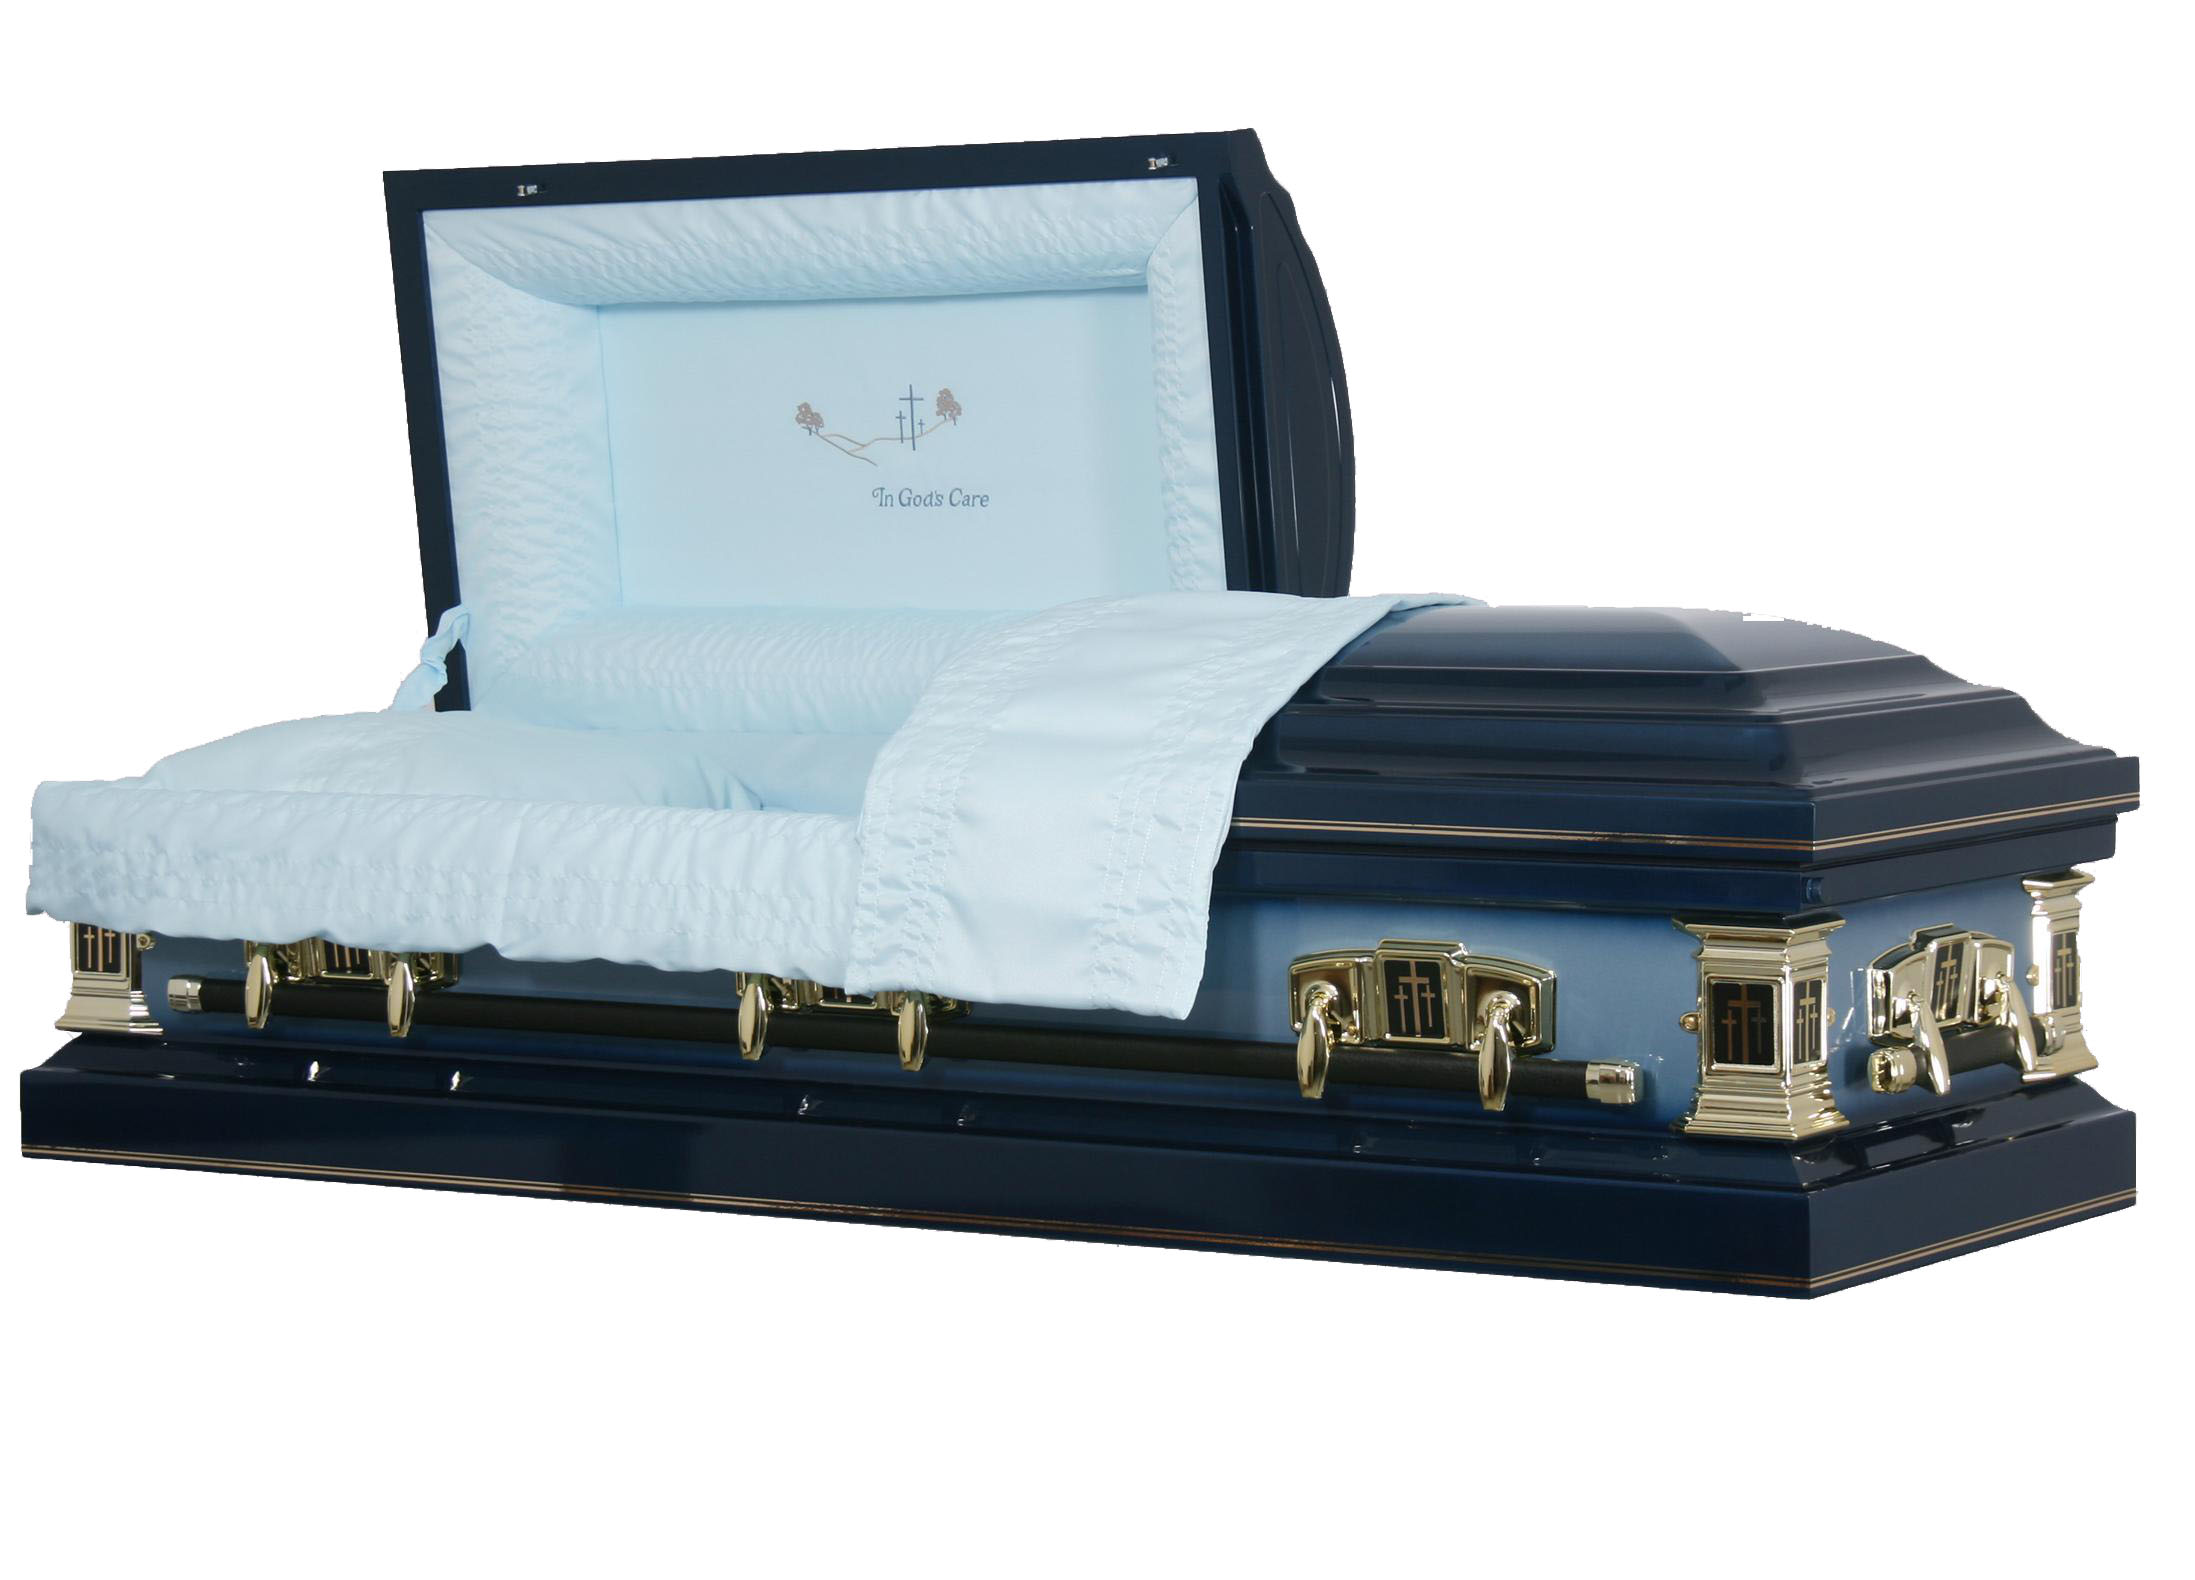 18g metal casket in blue